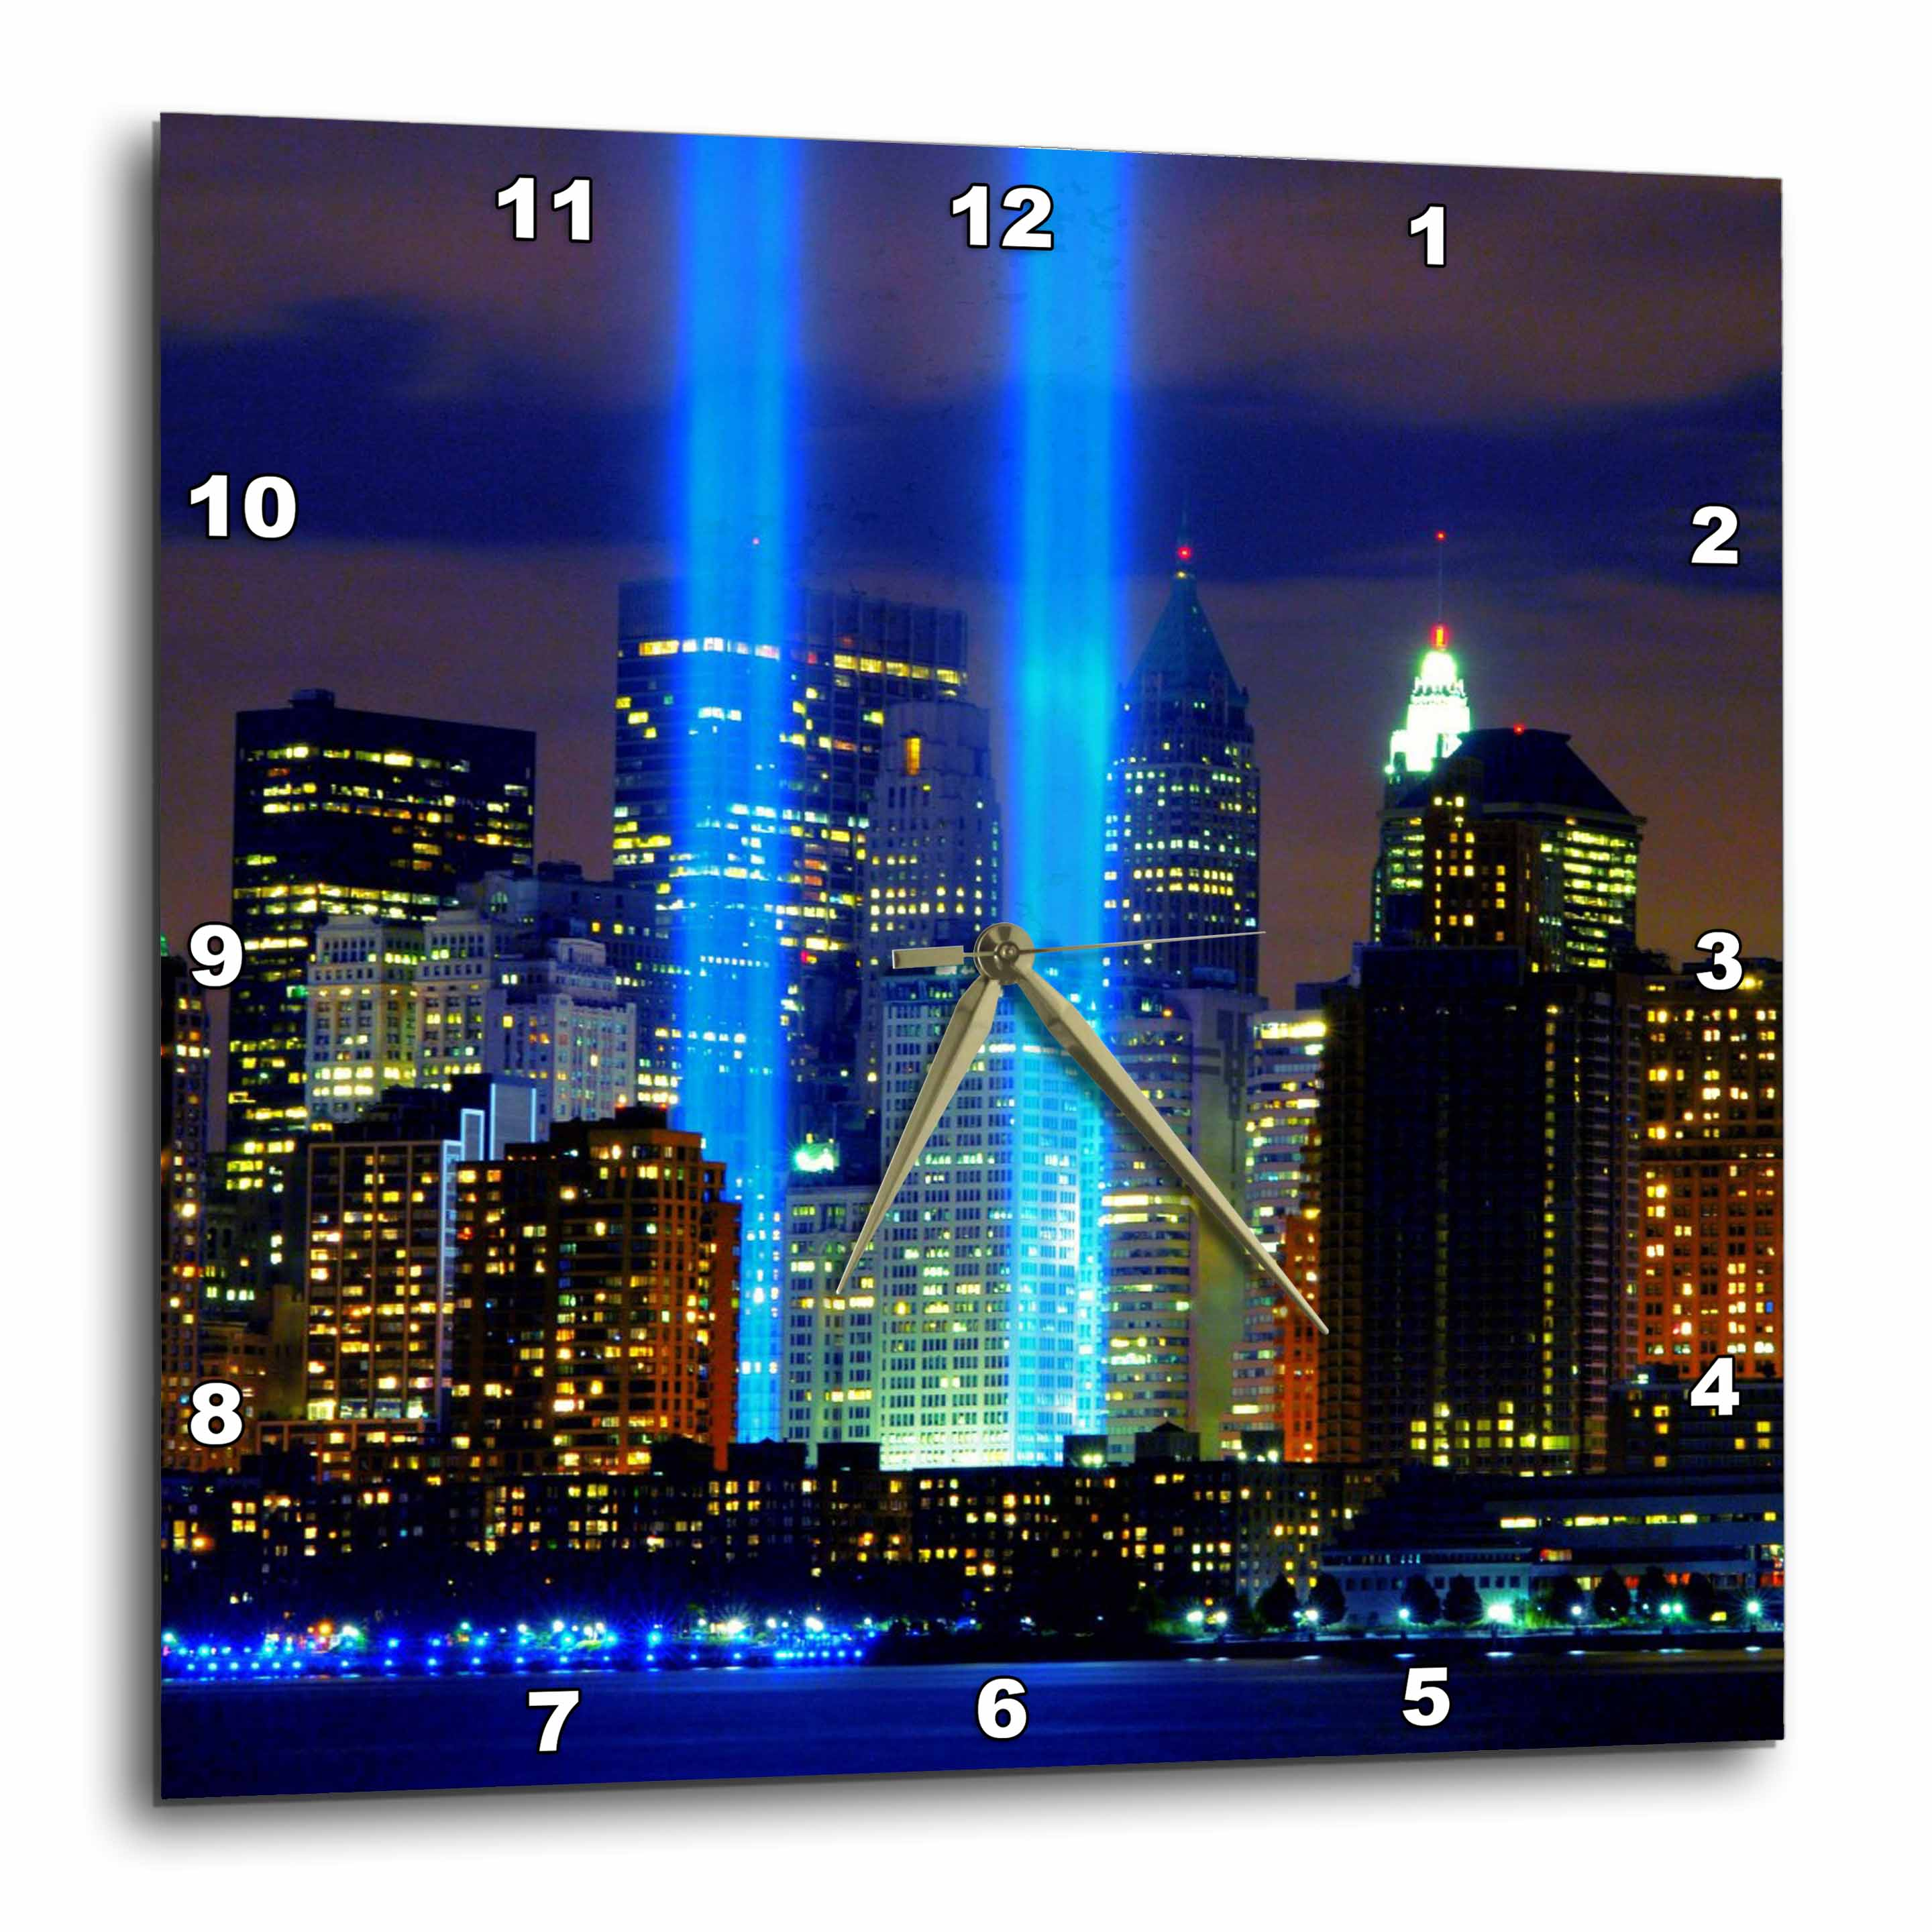 3dRose Beautiful photograph of the Twin Towers 911 Memorial Lights Never Forget, Wall Clock, 10 by 10-inch